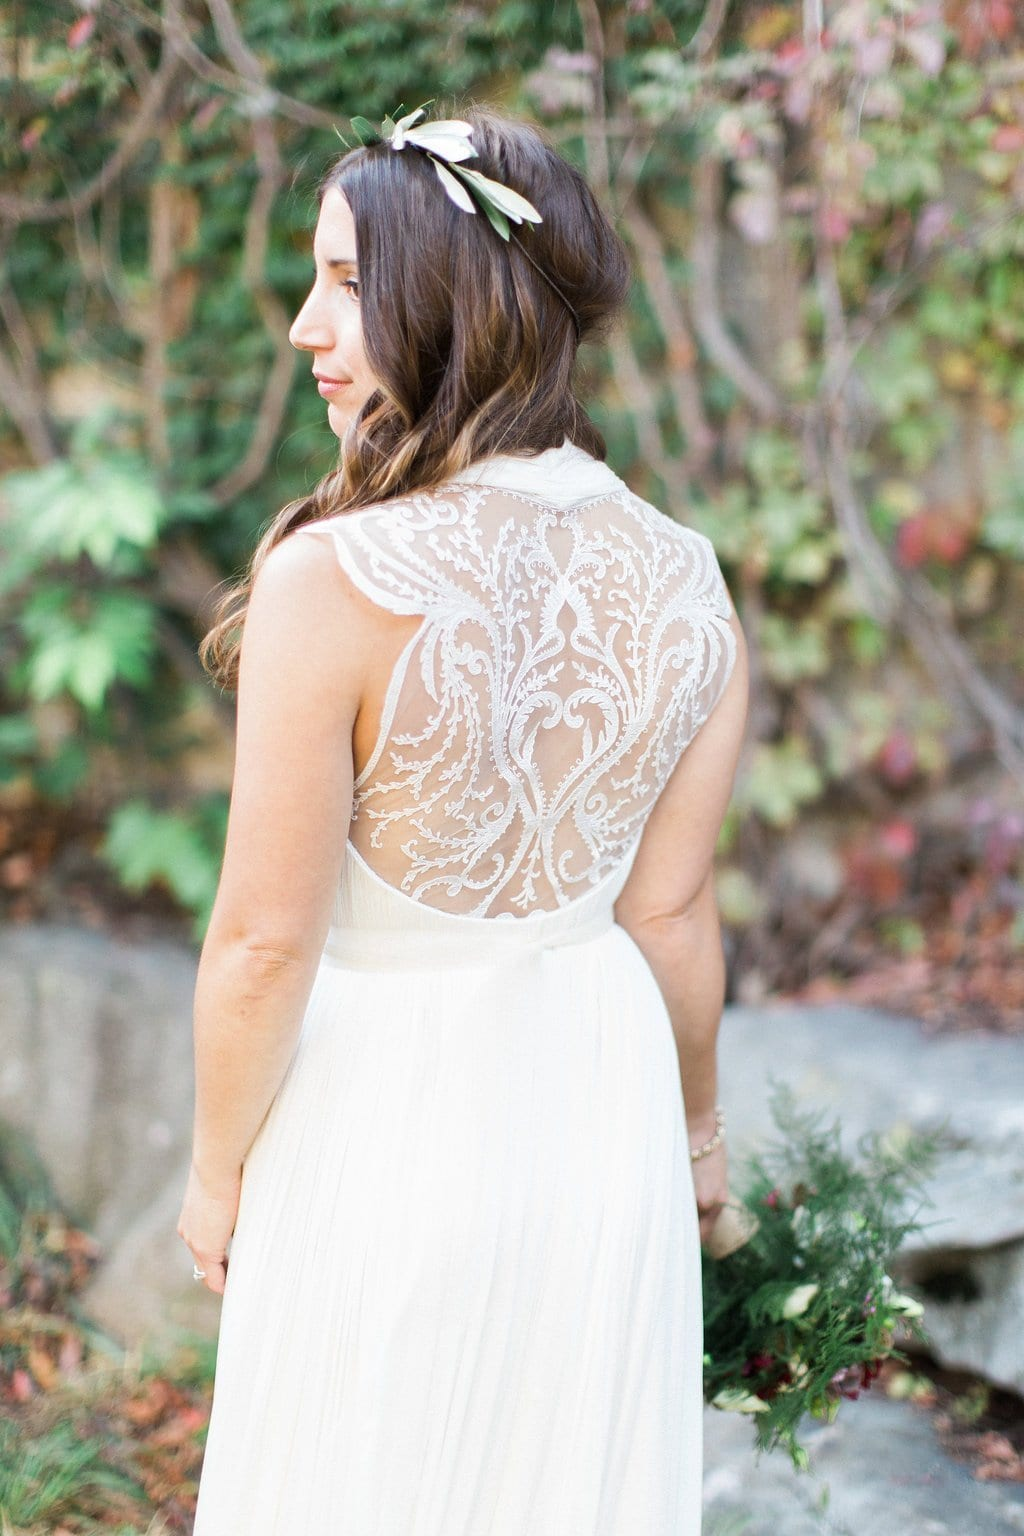 Portrait of bride wearing BHLDN wedding dress showing her back with sheer lace details